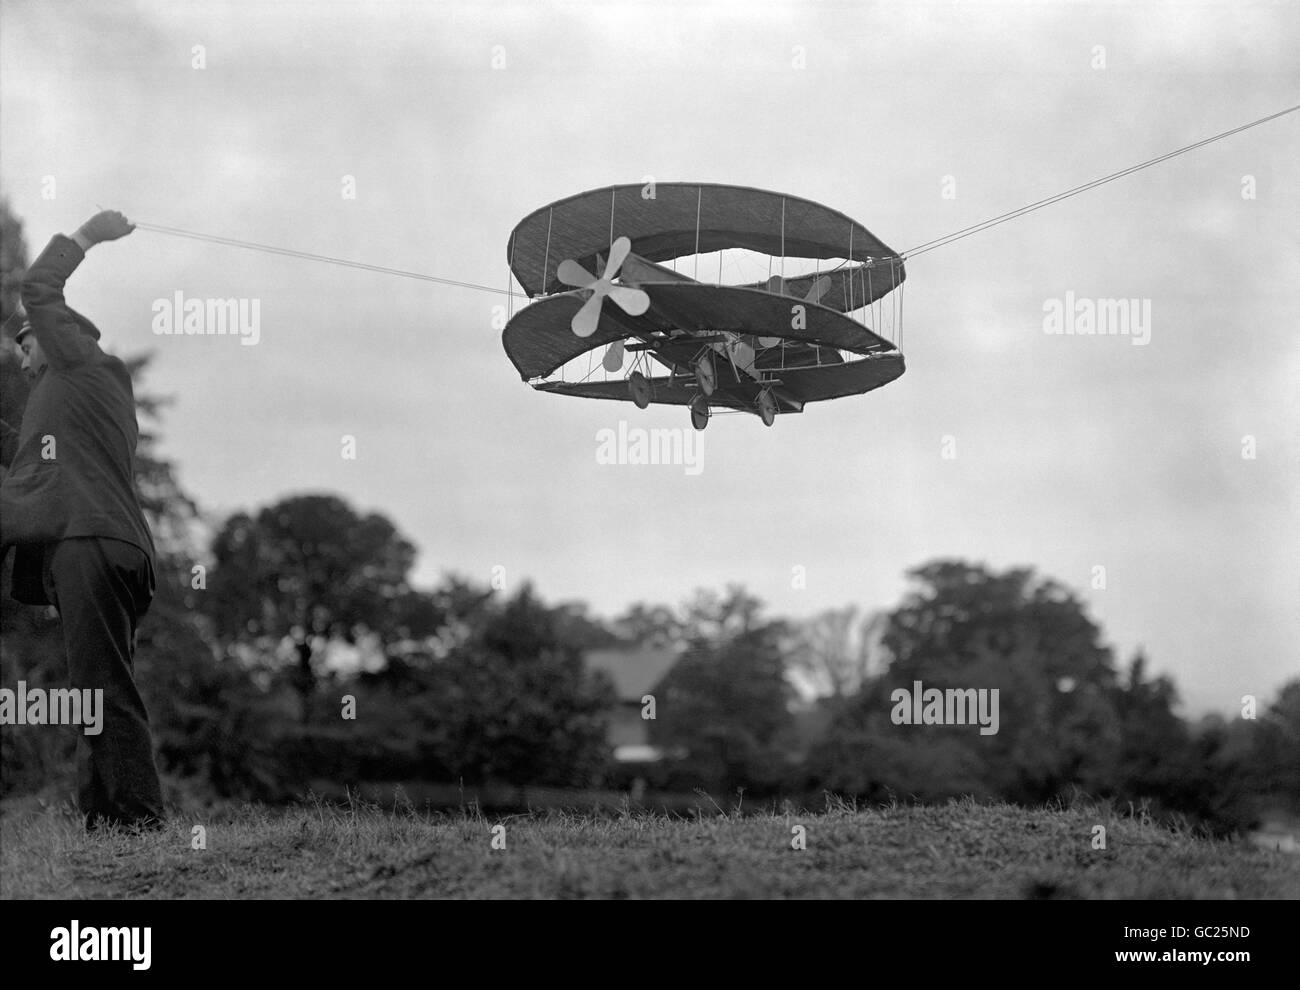 British Transport - Air - Model Aircraft - 1910 - Stock Image